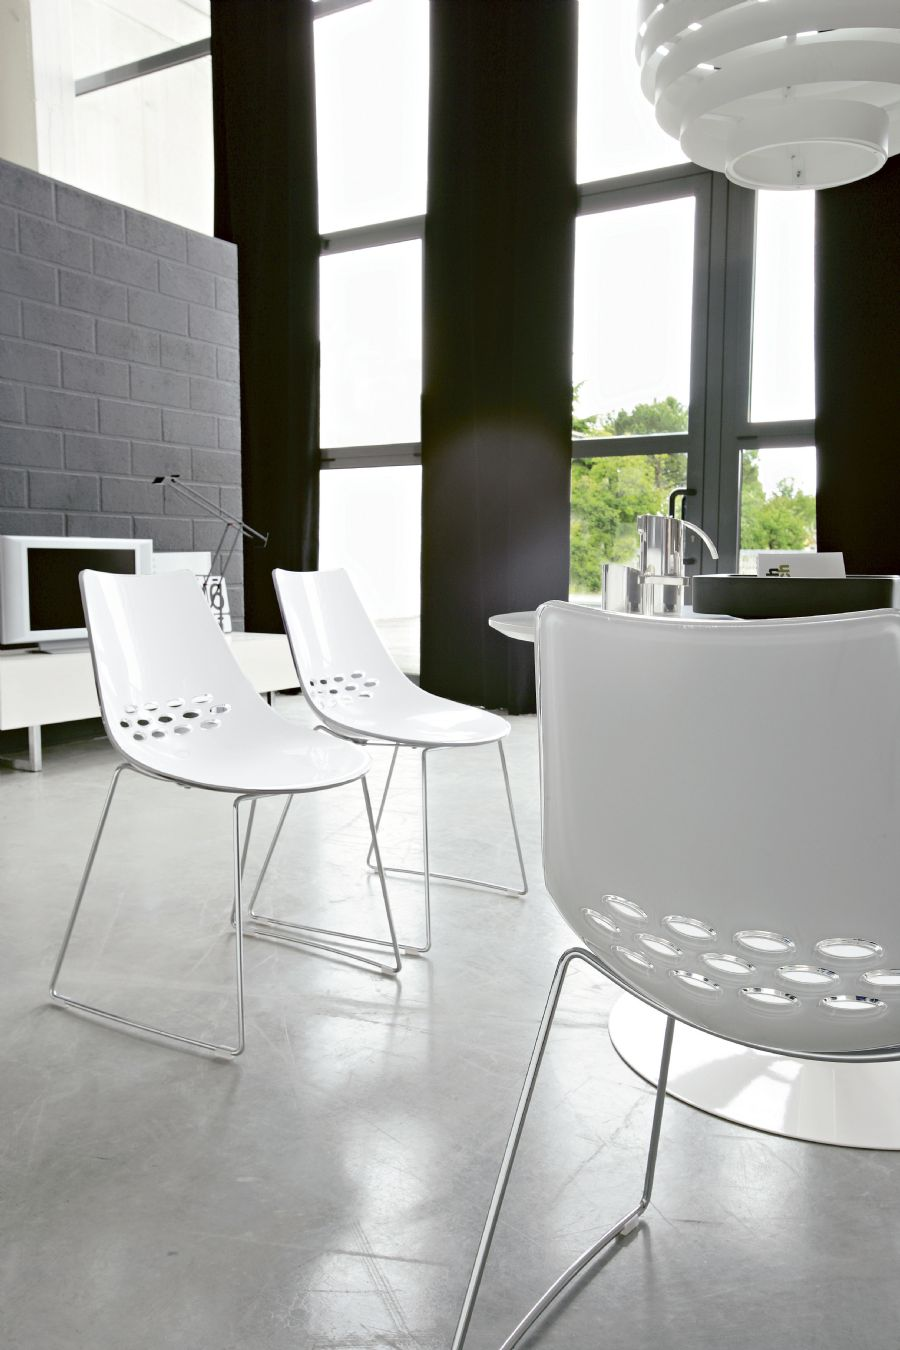 & JAM BY CALLIGARIS DINING CHAIR